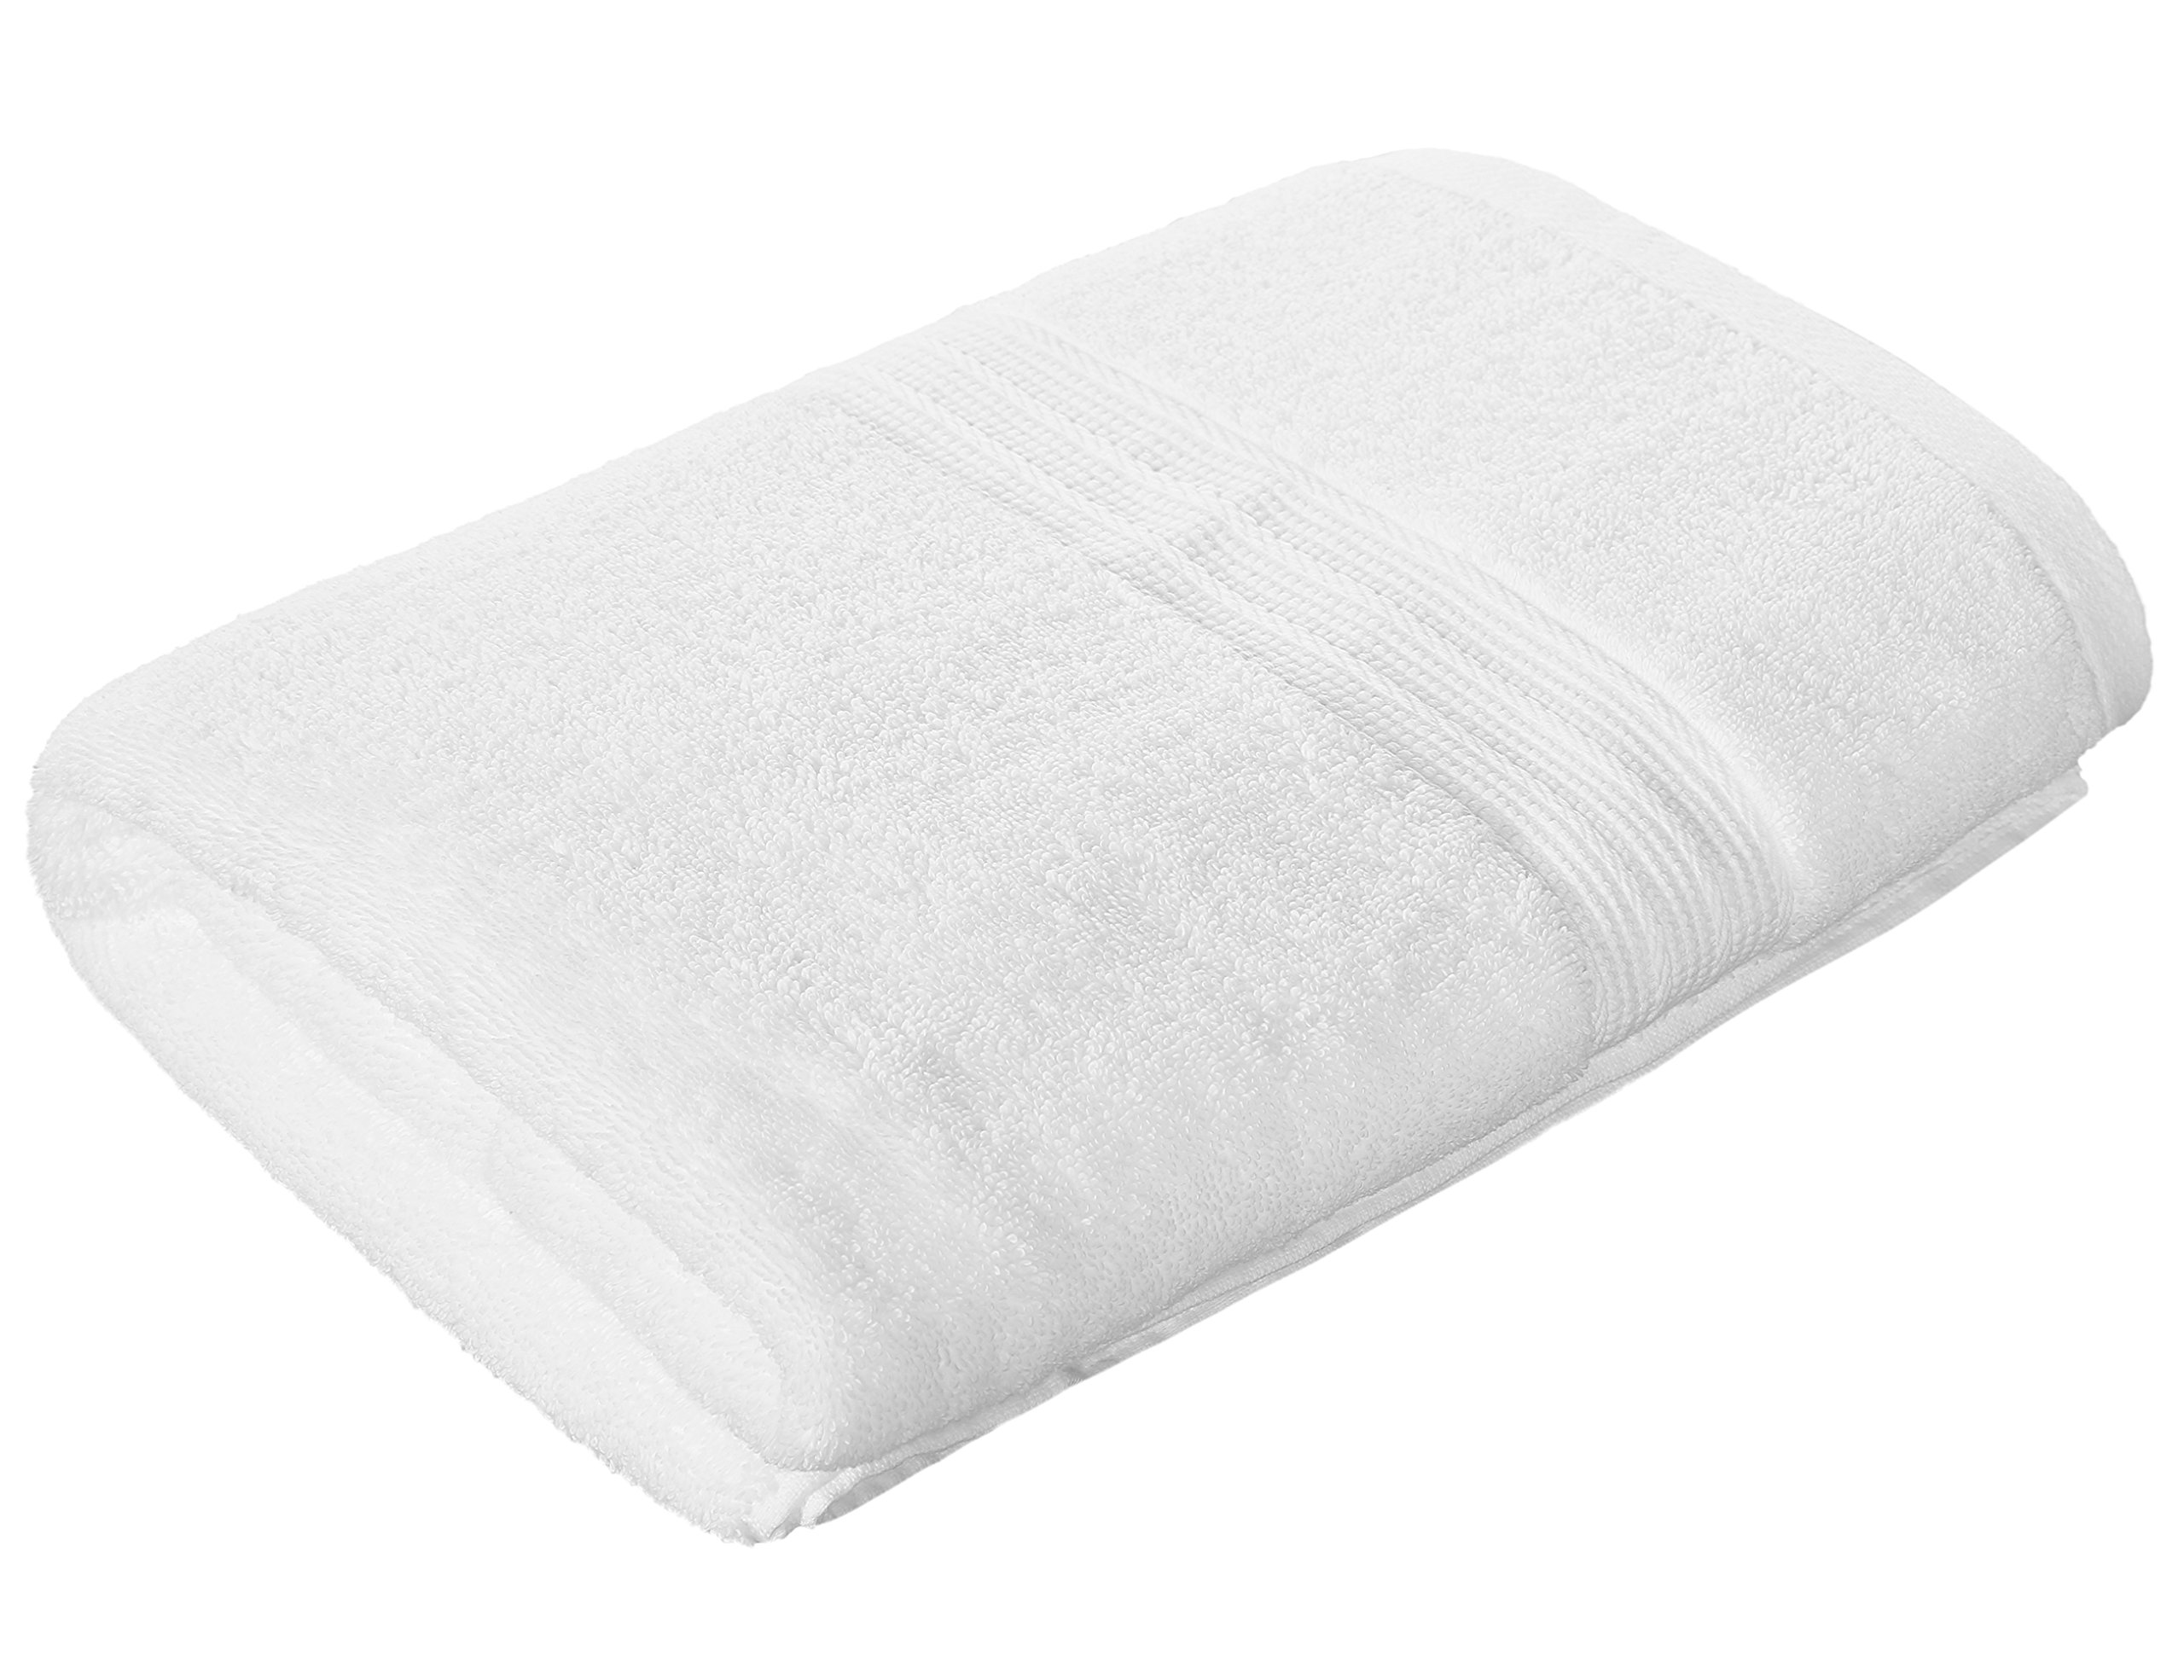 Chama Premium 700 GSM Extra Large Bath Towel(30 x 56 Inch) Luxury Bath Sheet 100% Cotton Soft Absorbent Available in More Colors for Home Hotel Spa - White